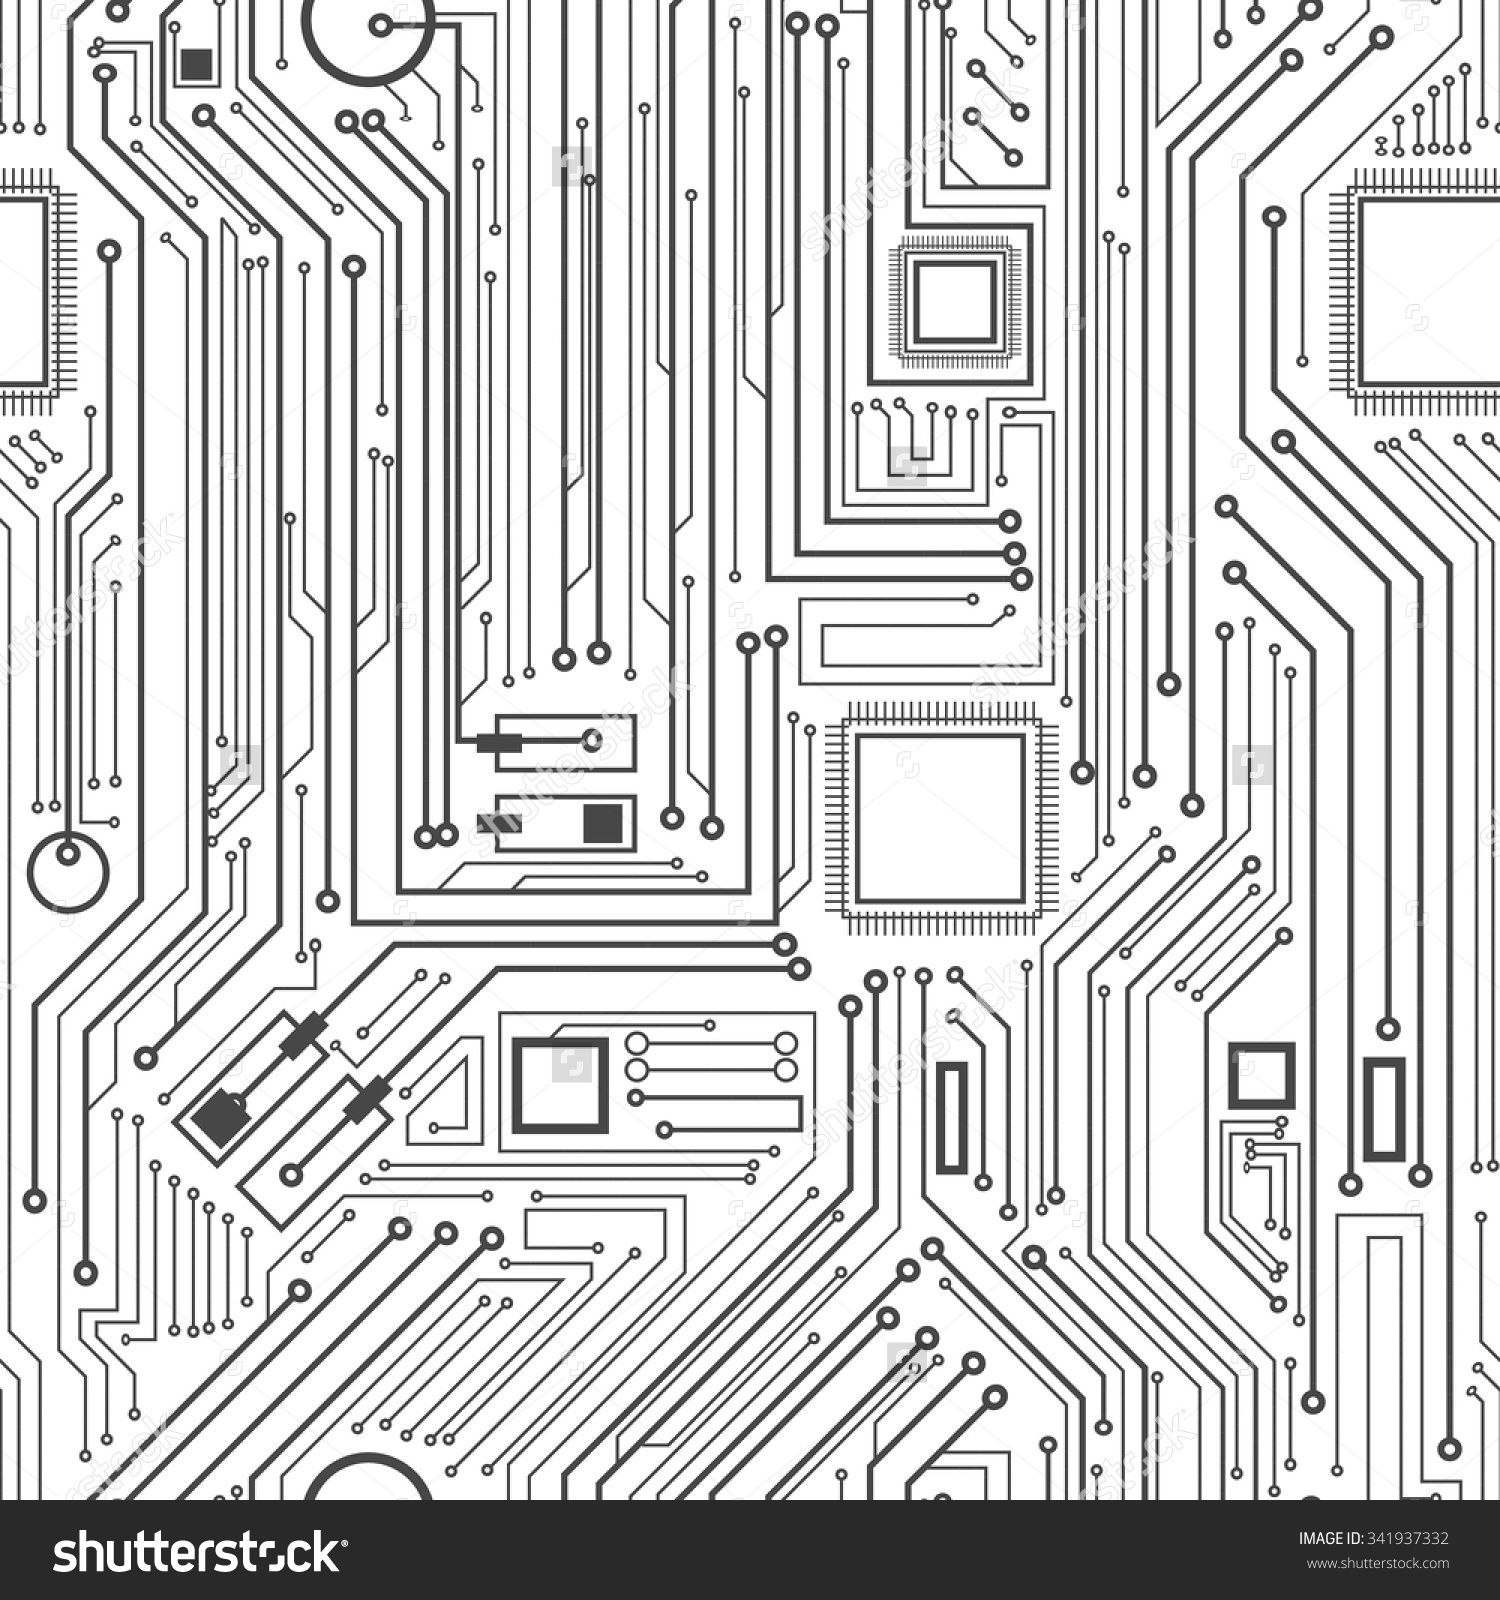 Image result for circuit board pattern | Art!! | Pinterest | Circuits